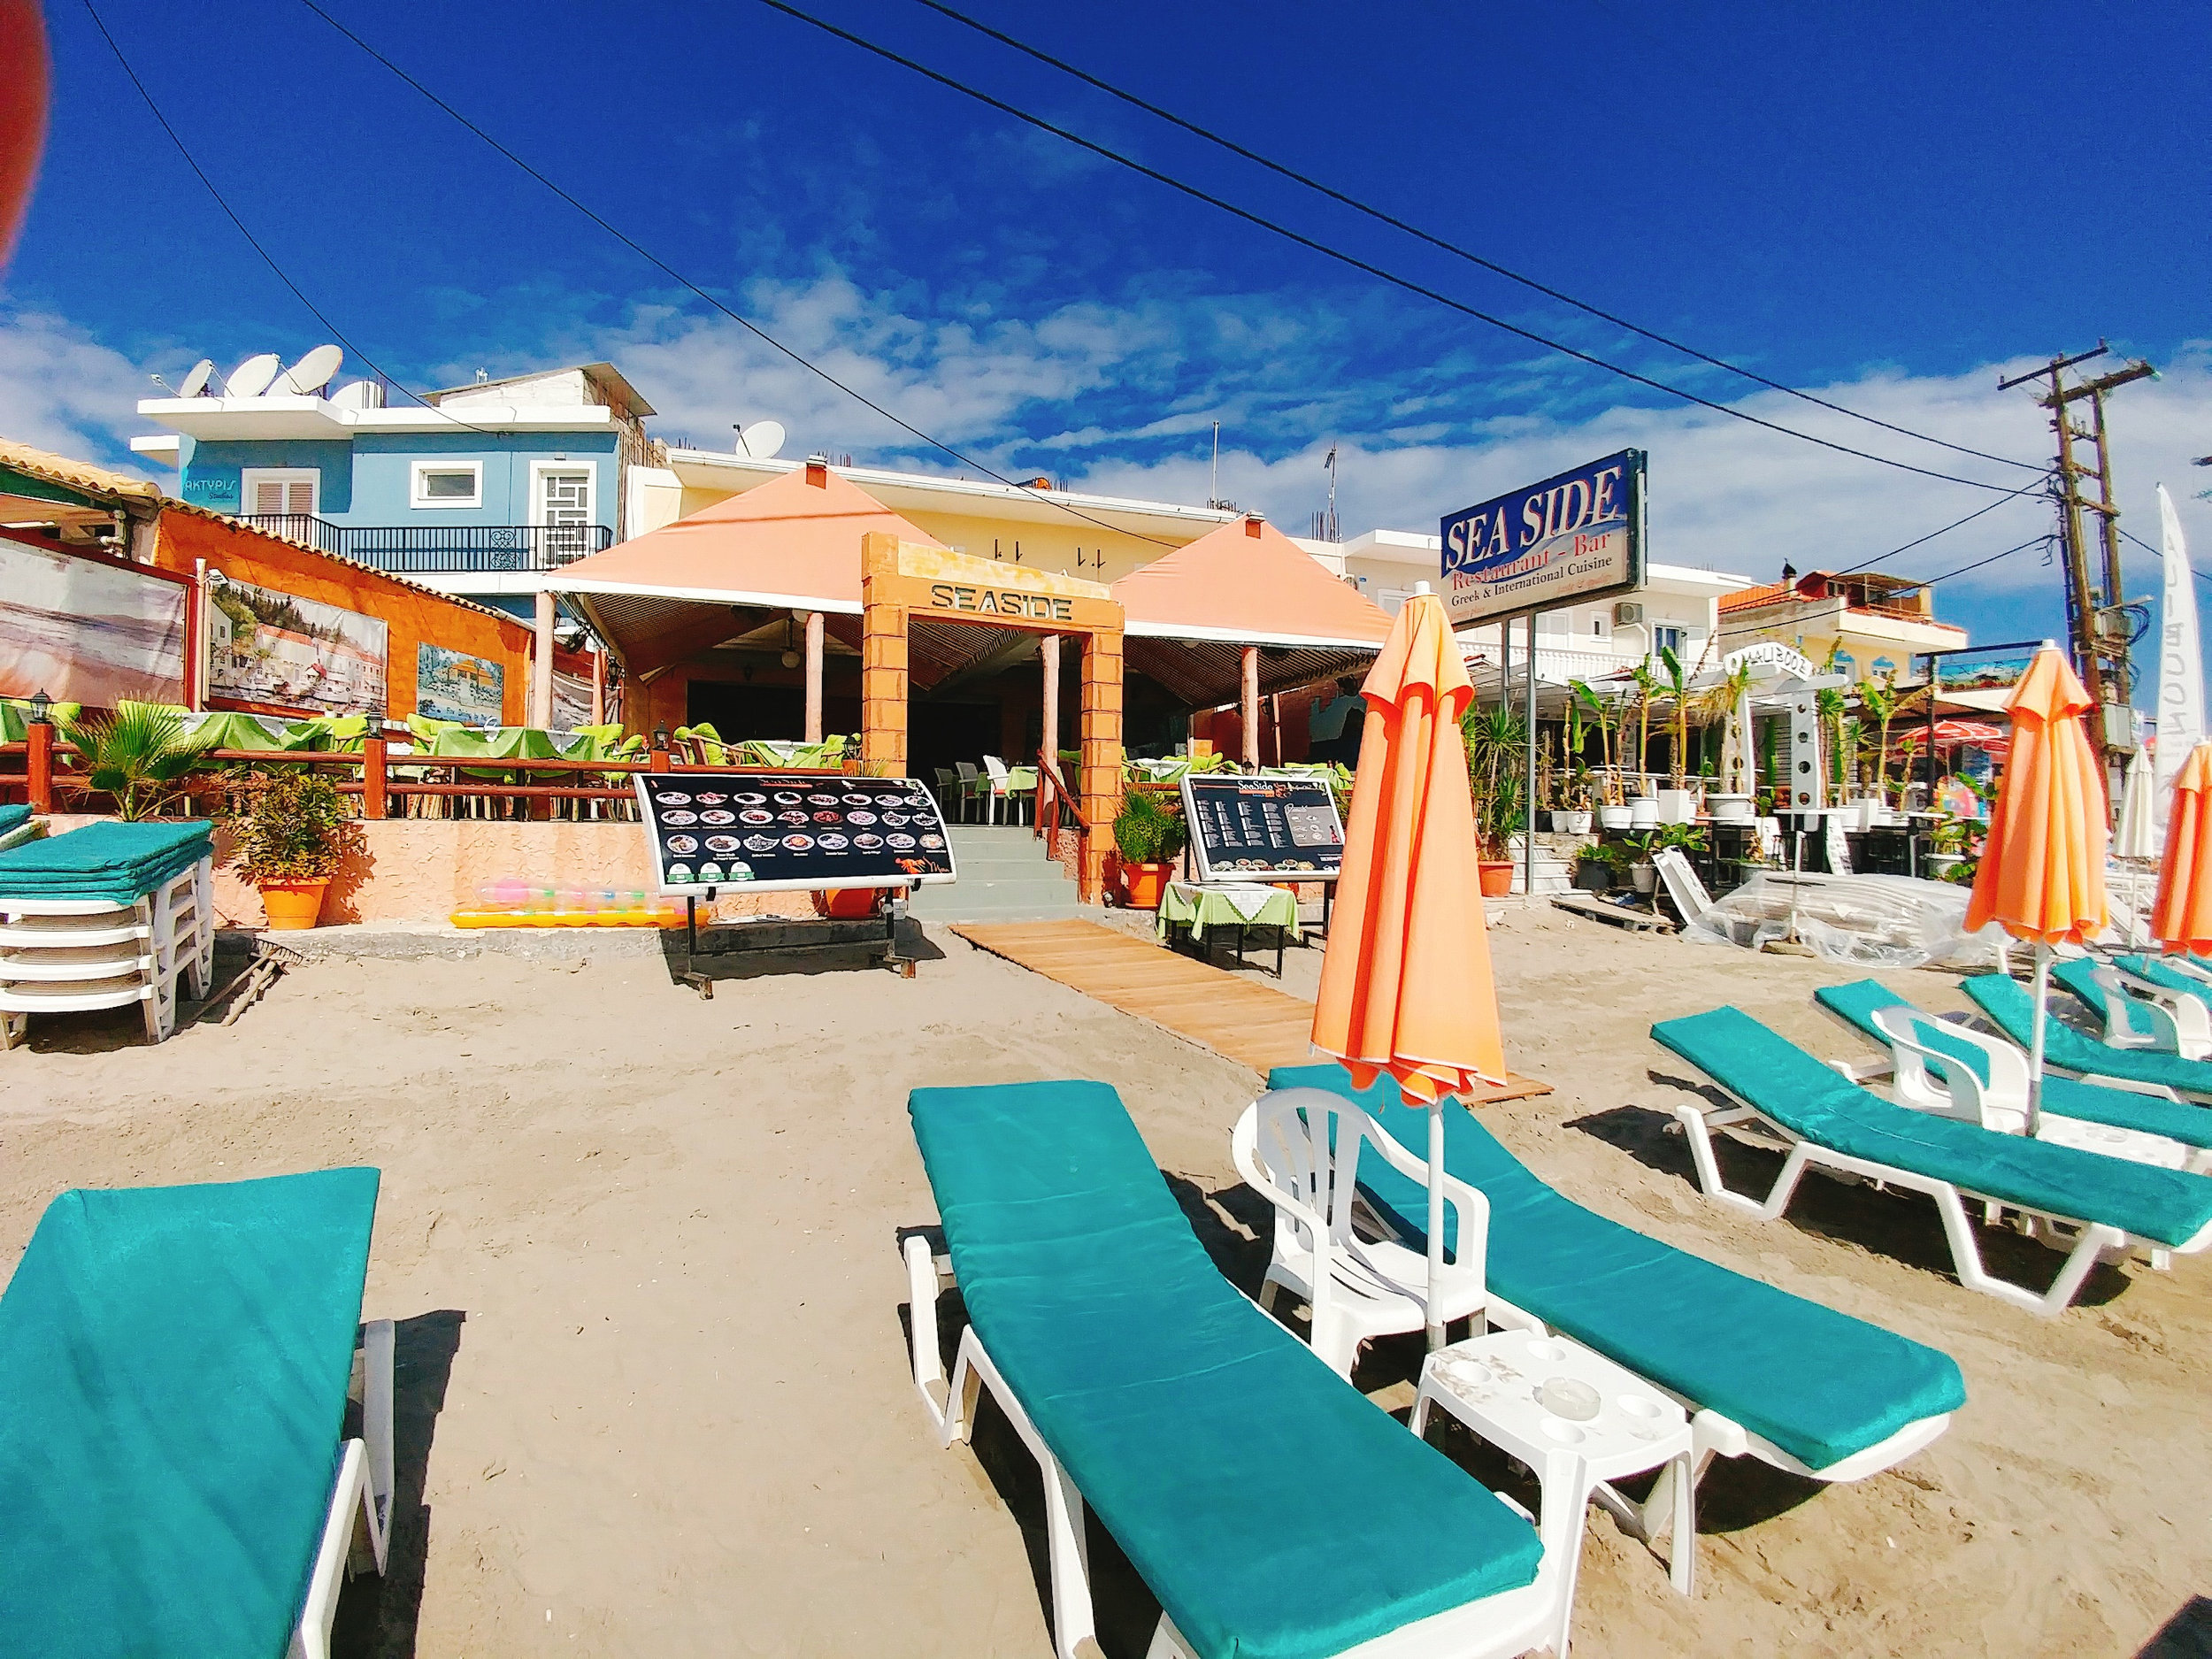 seaside-restaurant-and-sundecks-on-laganas-beach-in-zakynthos.jpg